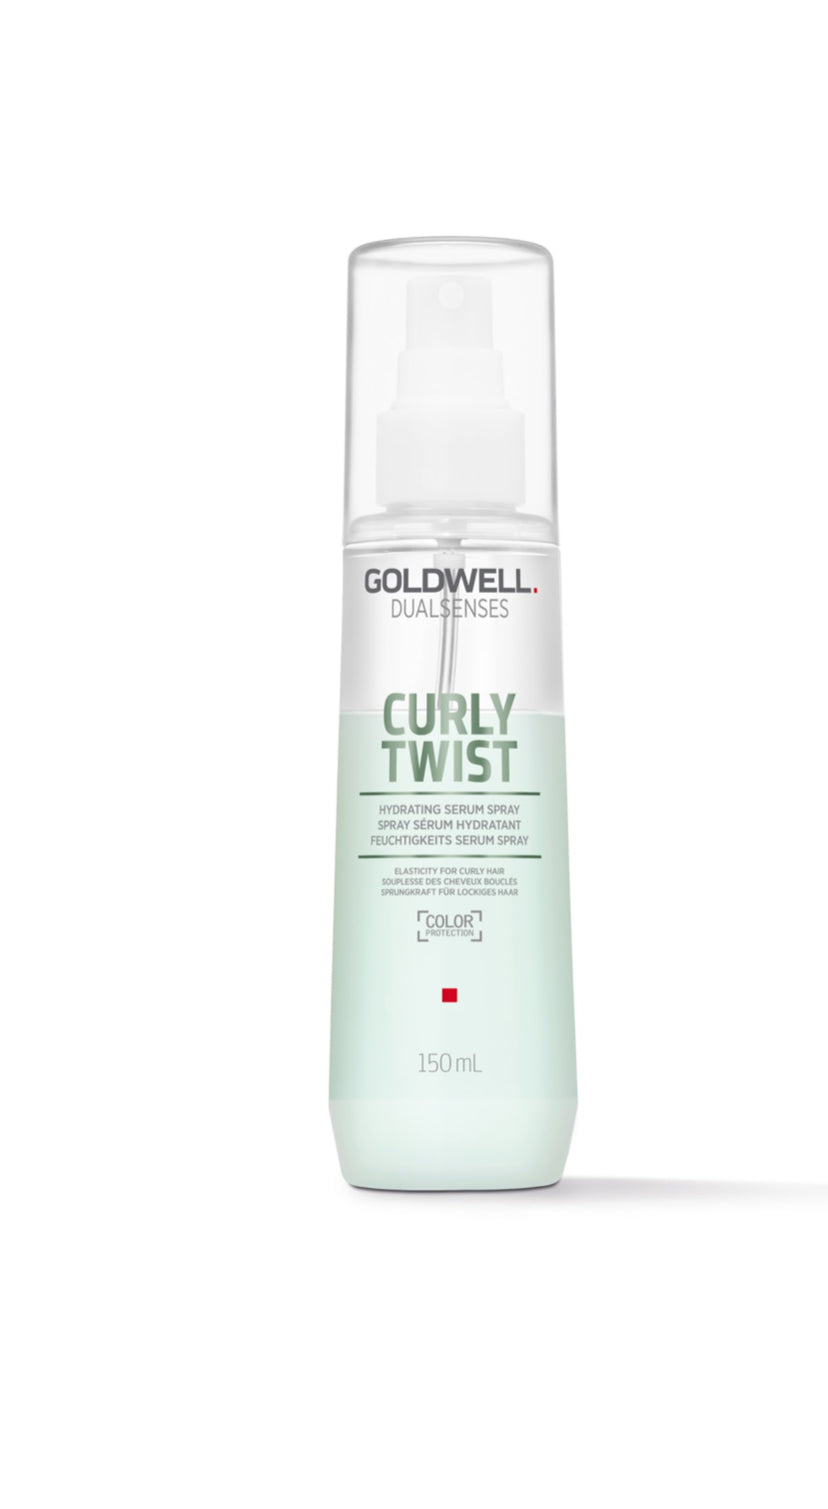 Dualsenses Curly Twist Hydrating Serum Spray  (250 ml)